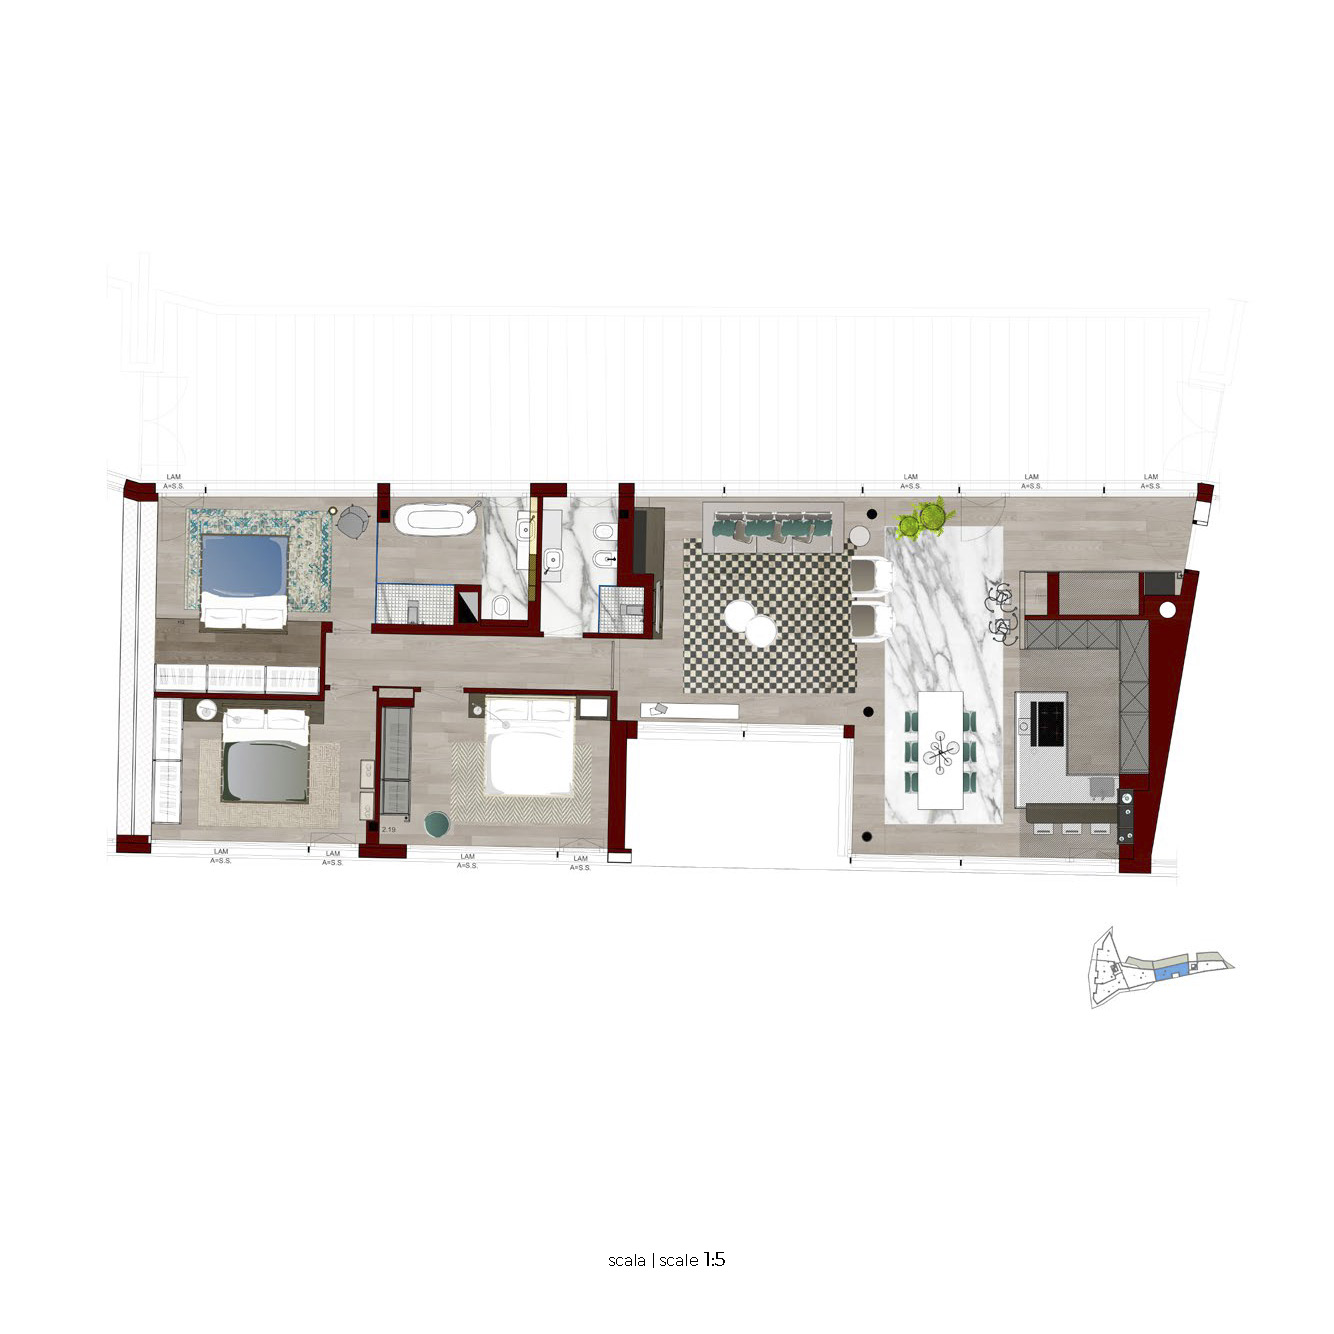 Plan floor 5 apartment penthouse 5 page 1